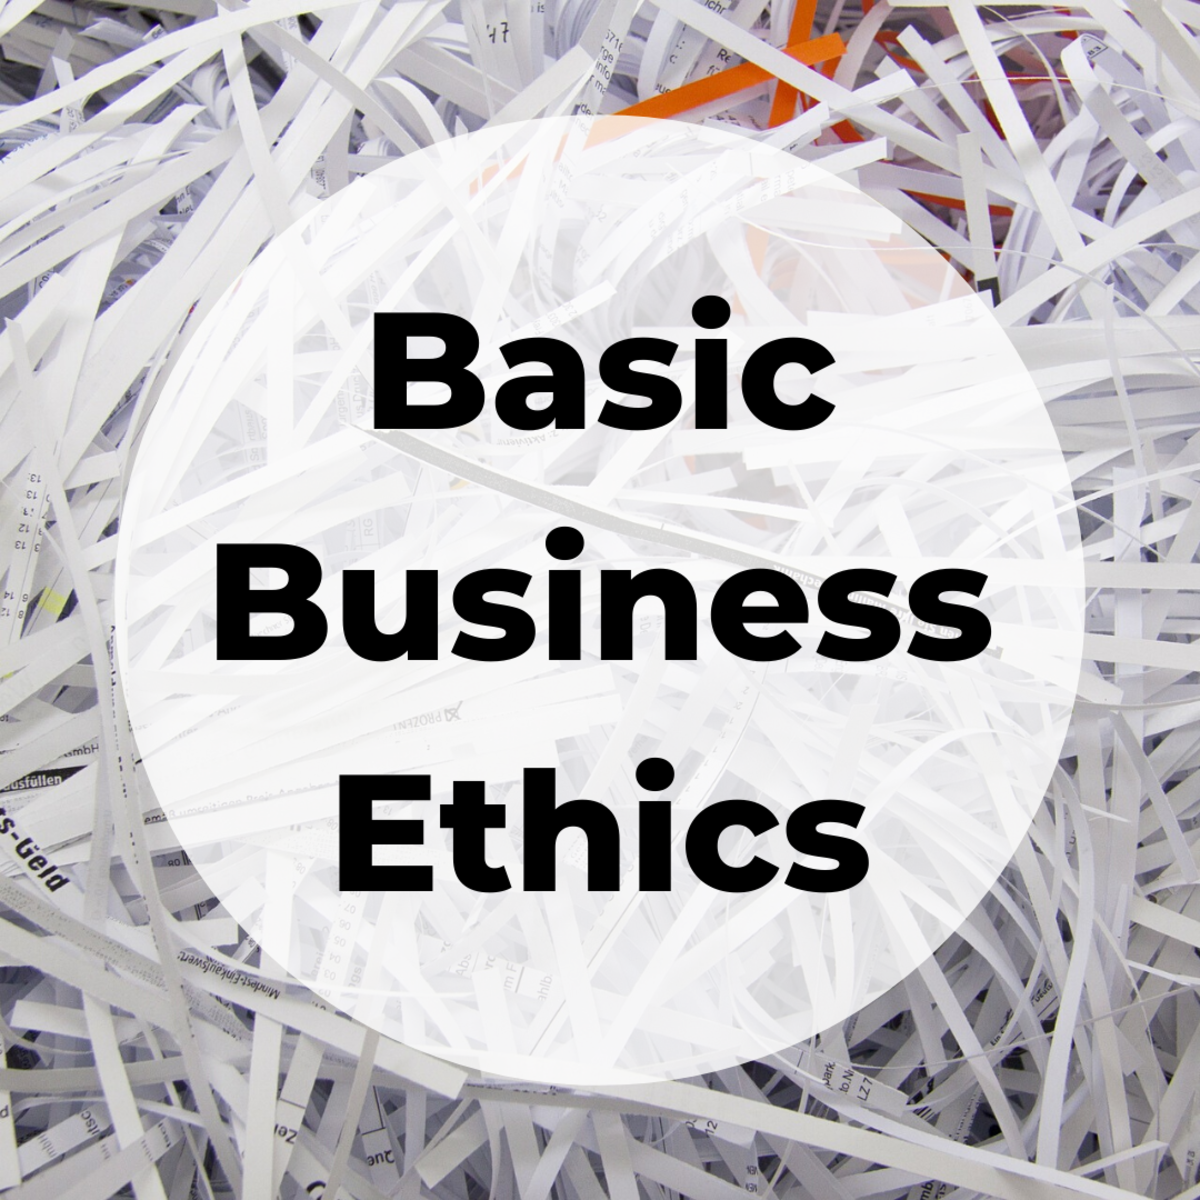 Defining Basic Business Ethics Concepts